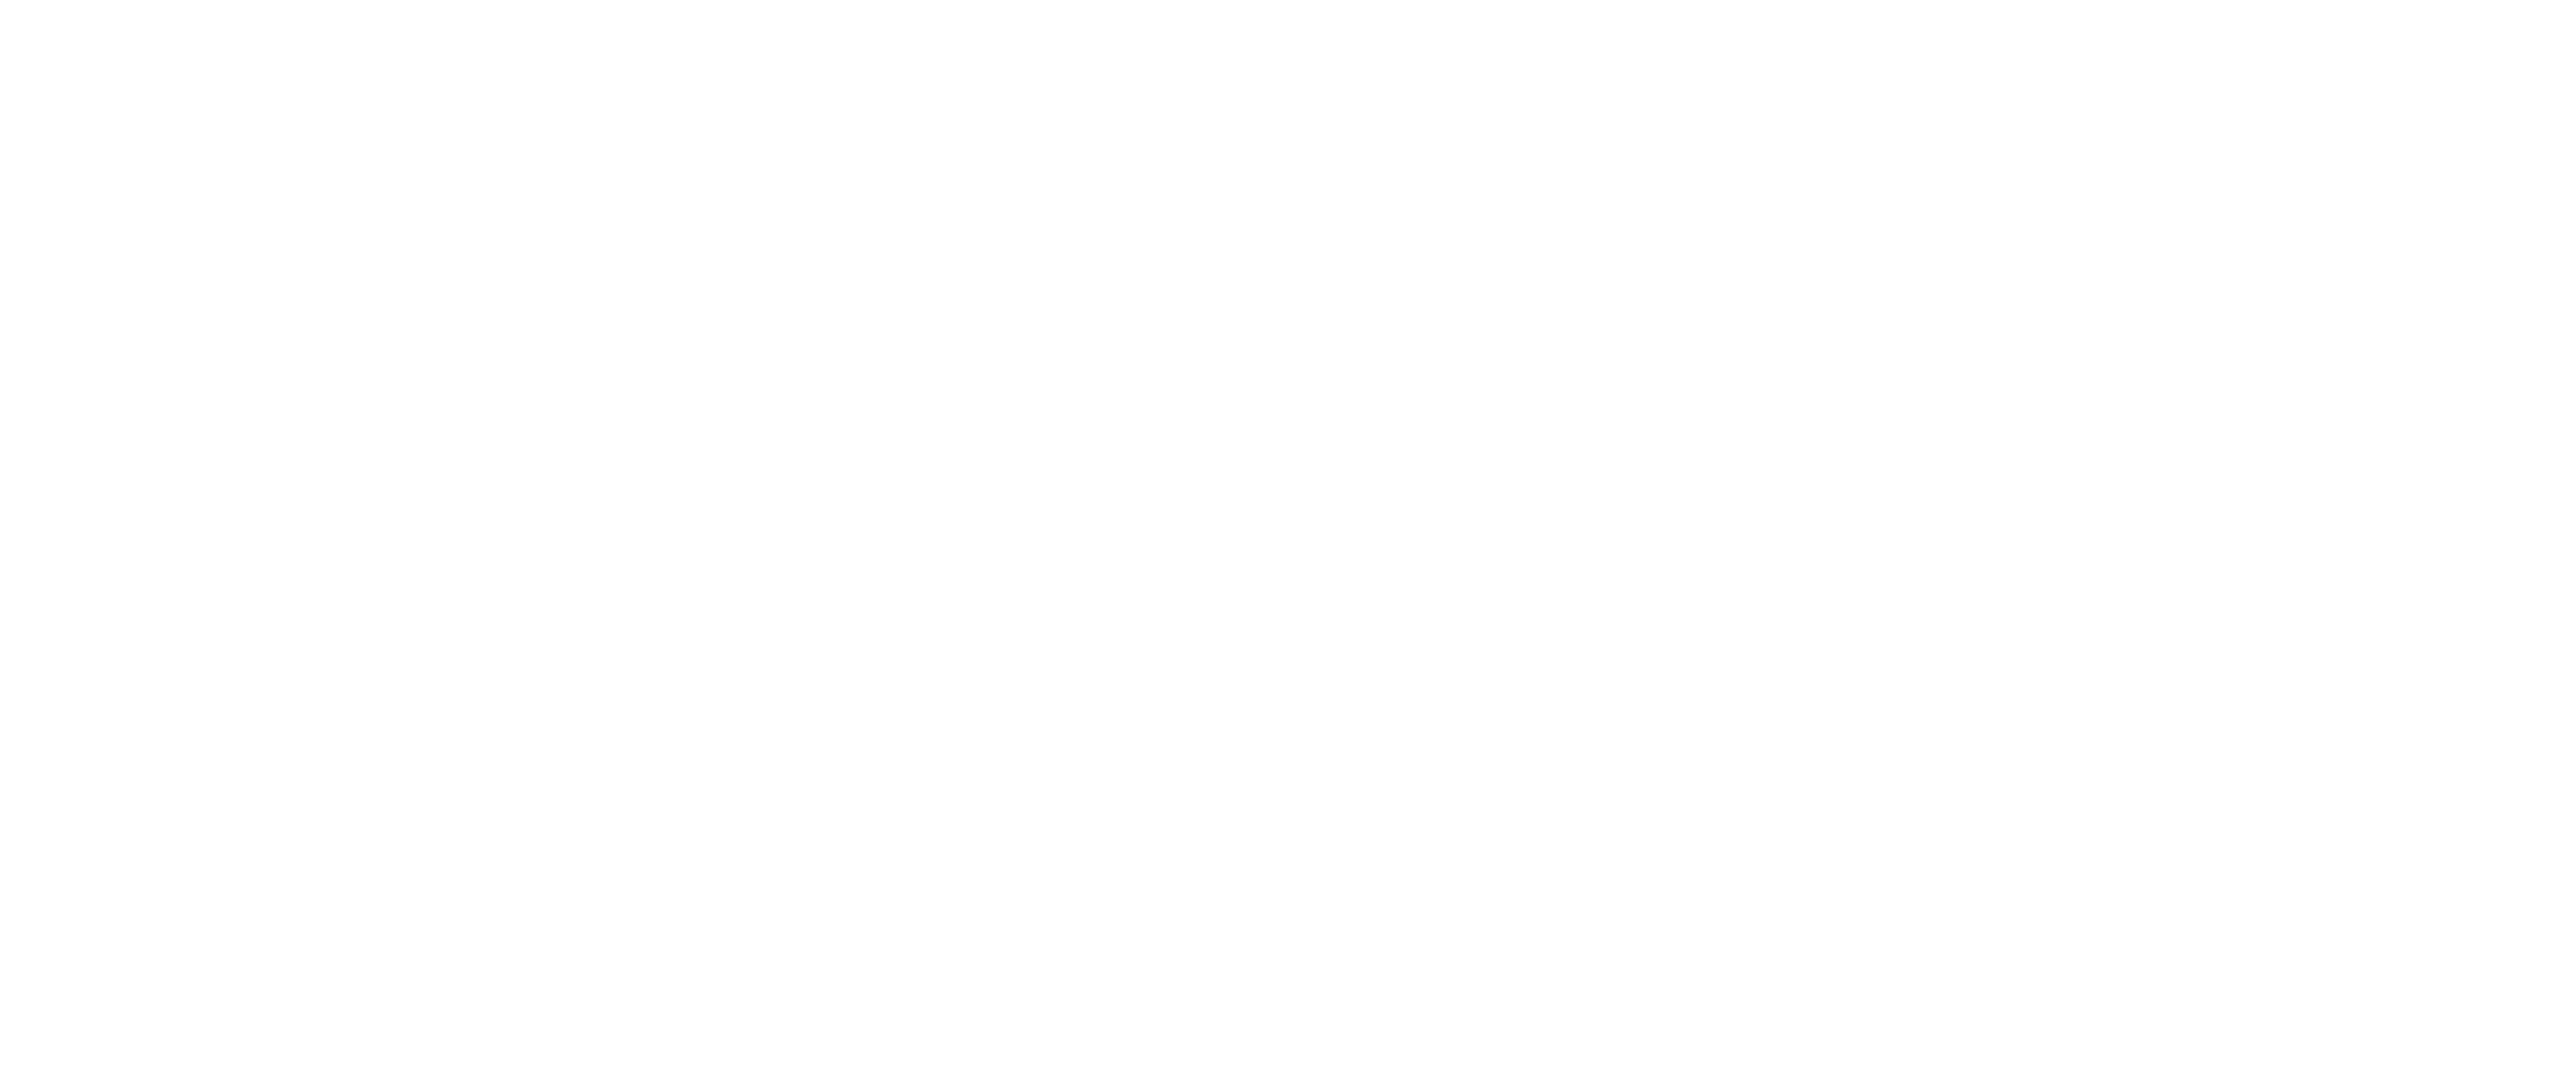 Valley Glass & Windows in Bozeman